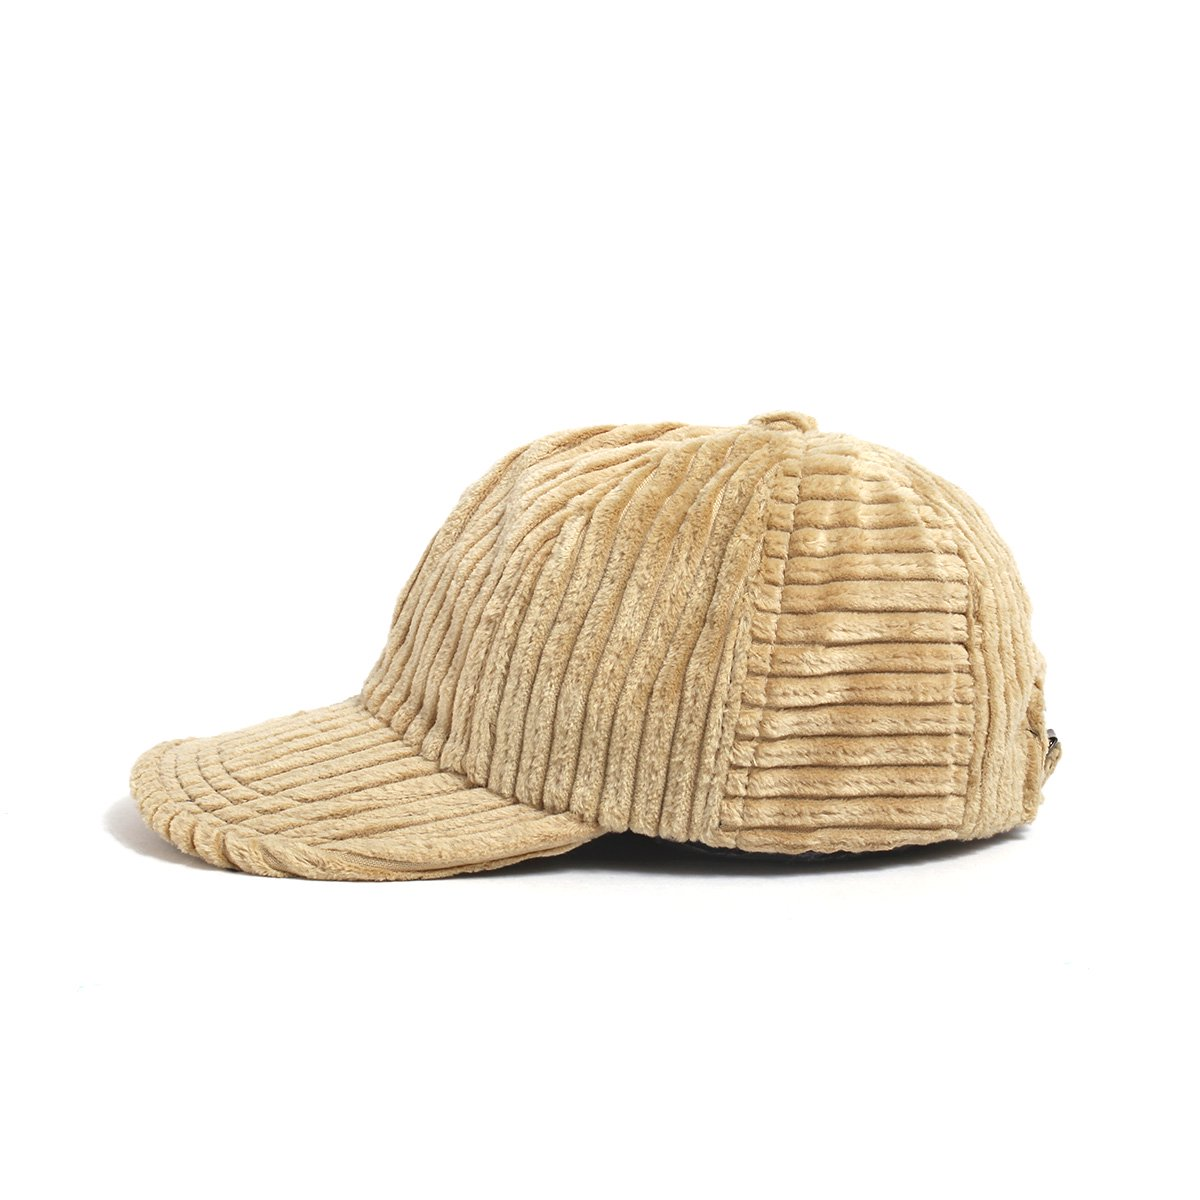 WIDE CORDUROY 8PANEL CAP 詳細画像3